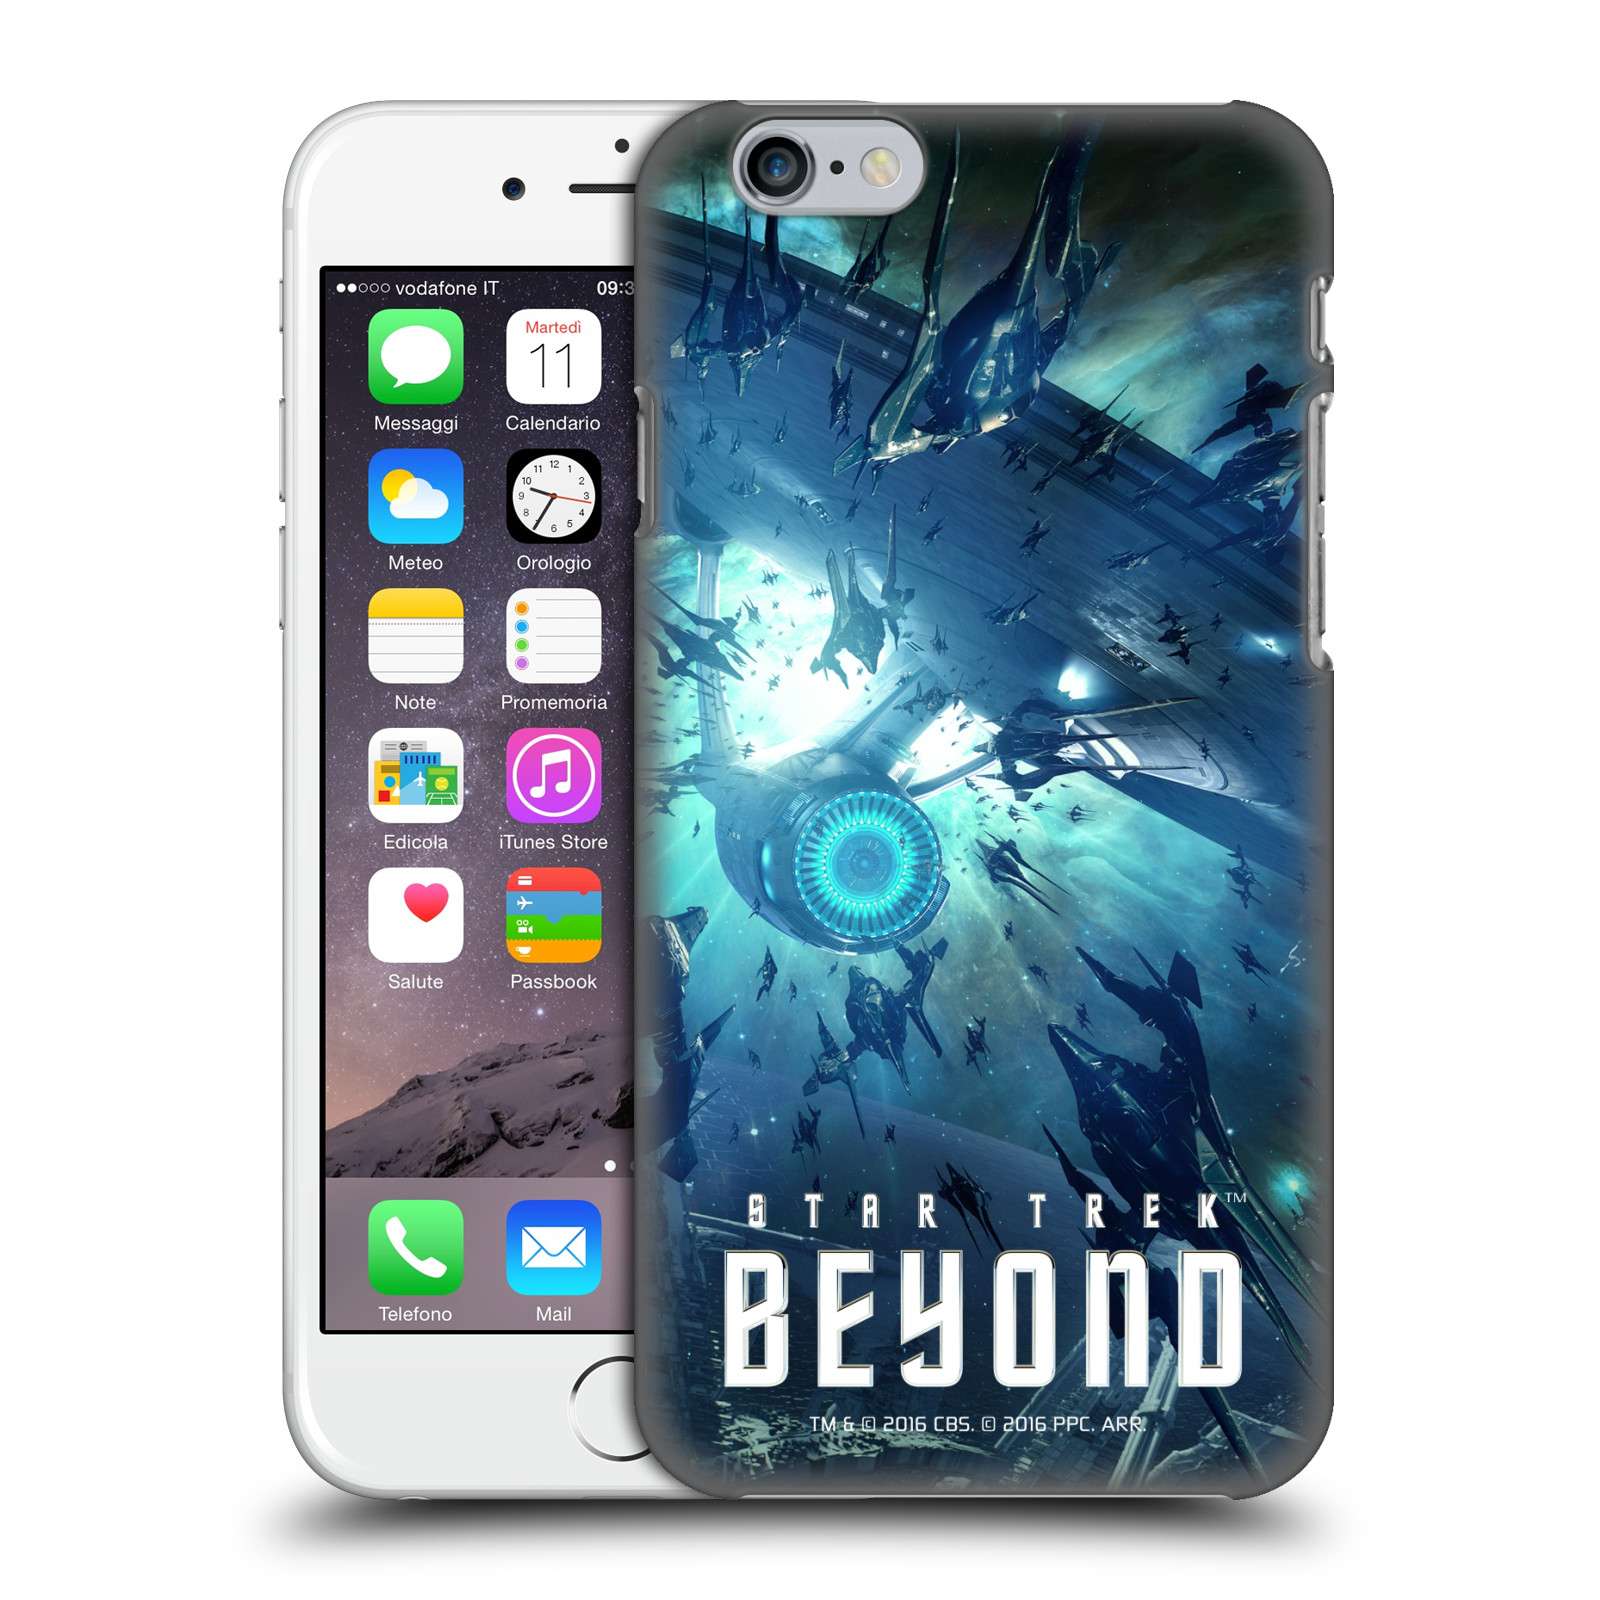 Star Trek Posters Beyond XIII-USS Enterprise NCC-1701 Swarmed